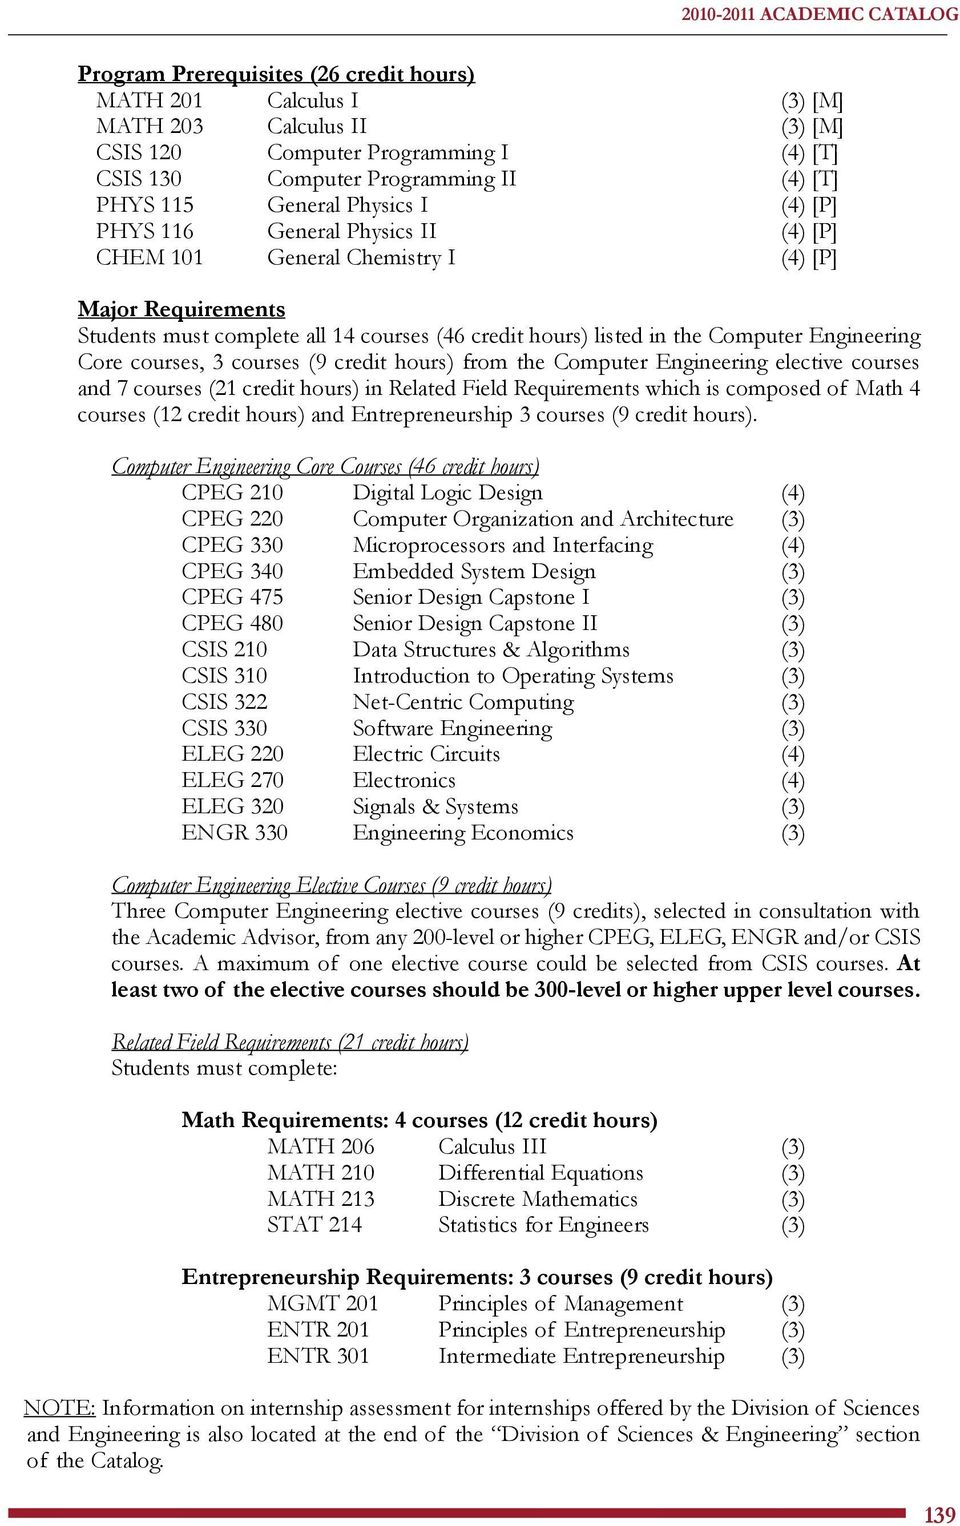 in the Computer Engineering Core courses, 3 courses (9 credit hours) from the Computer Engineering elective courses and 7 courses (21 credit hours) in Related Field Requirements which is composed of